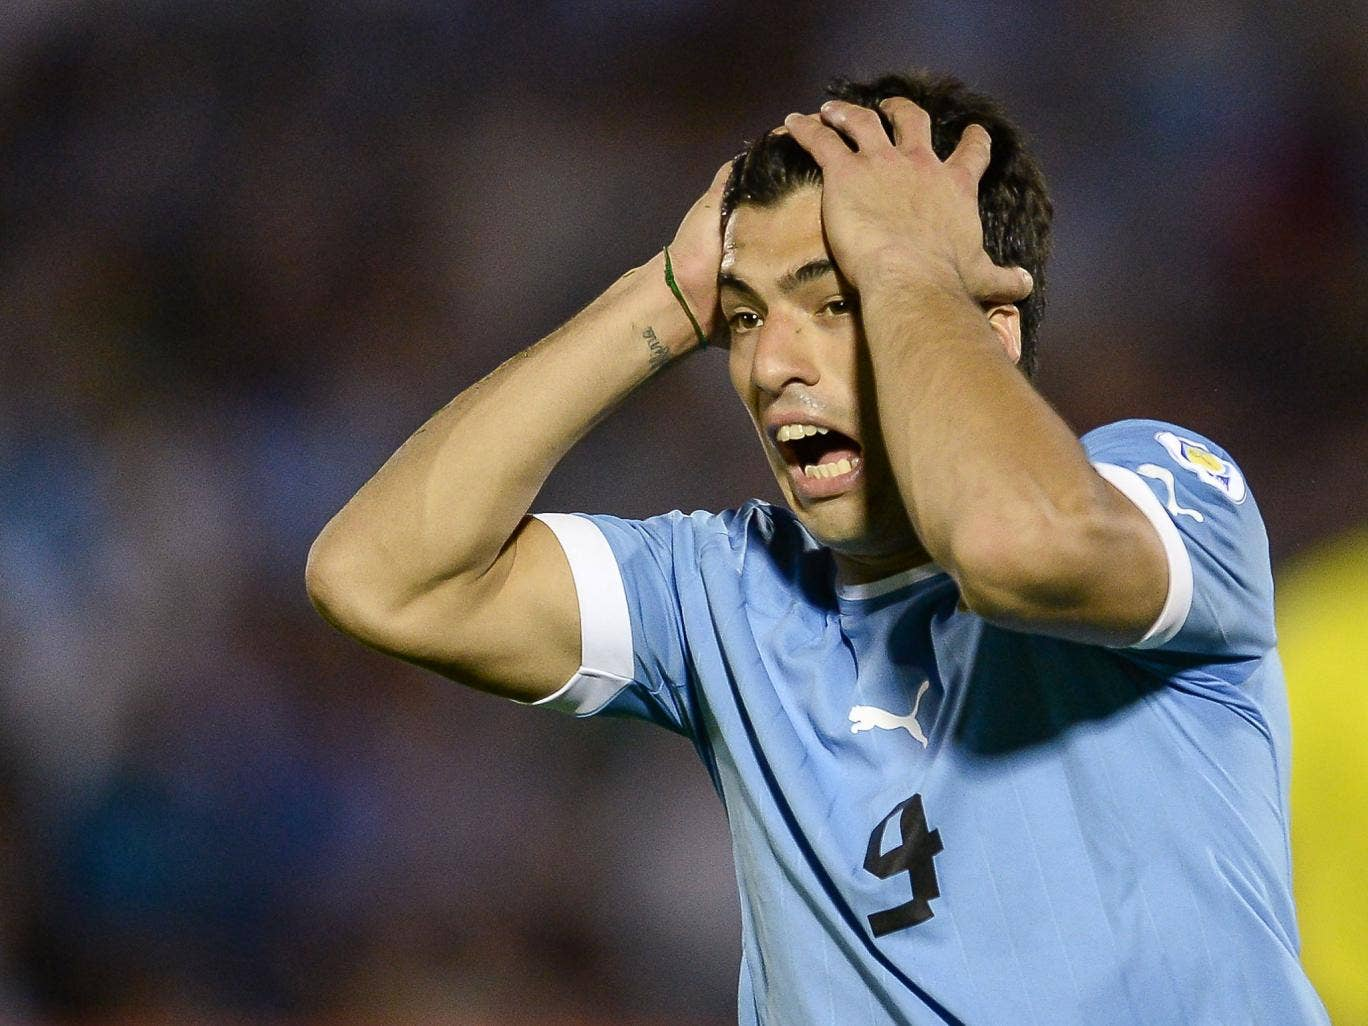 Luis Suarez reacts during Uruguay's 3-2 victory over Argentina